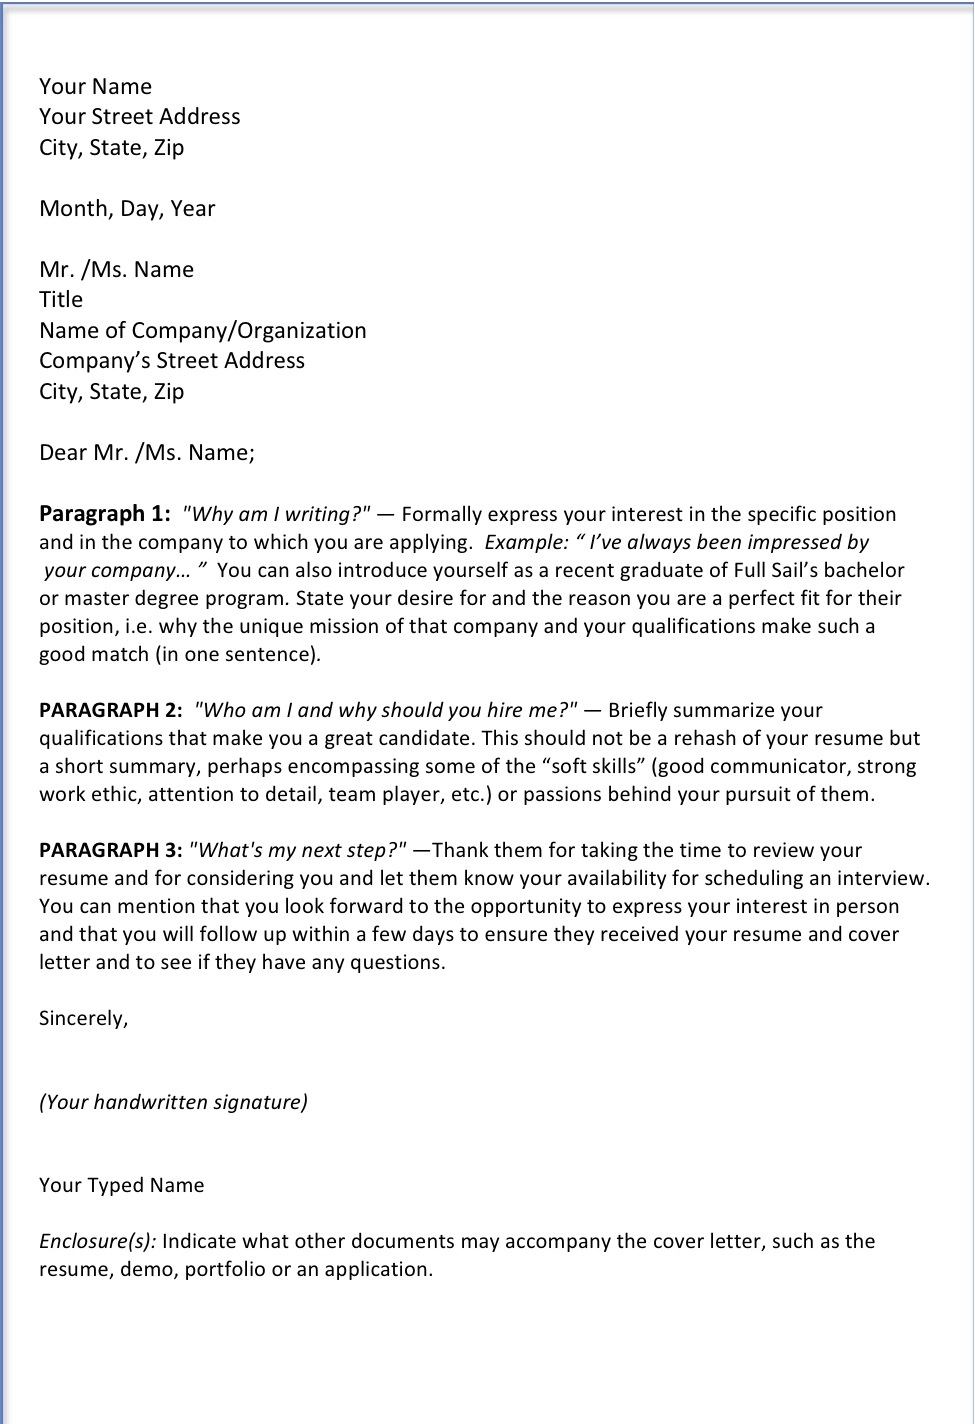 COVER LETTER TIPS « FS Music Production